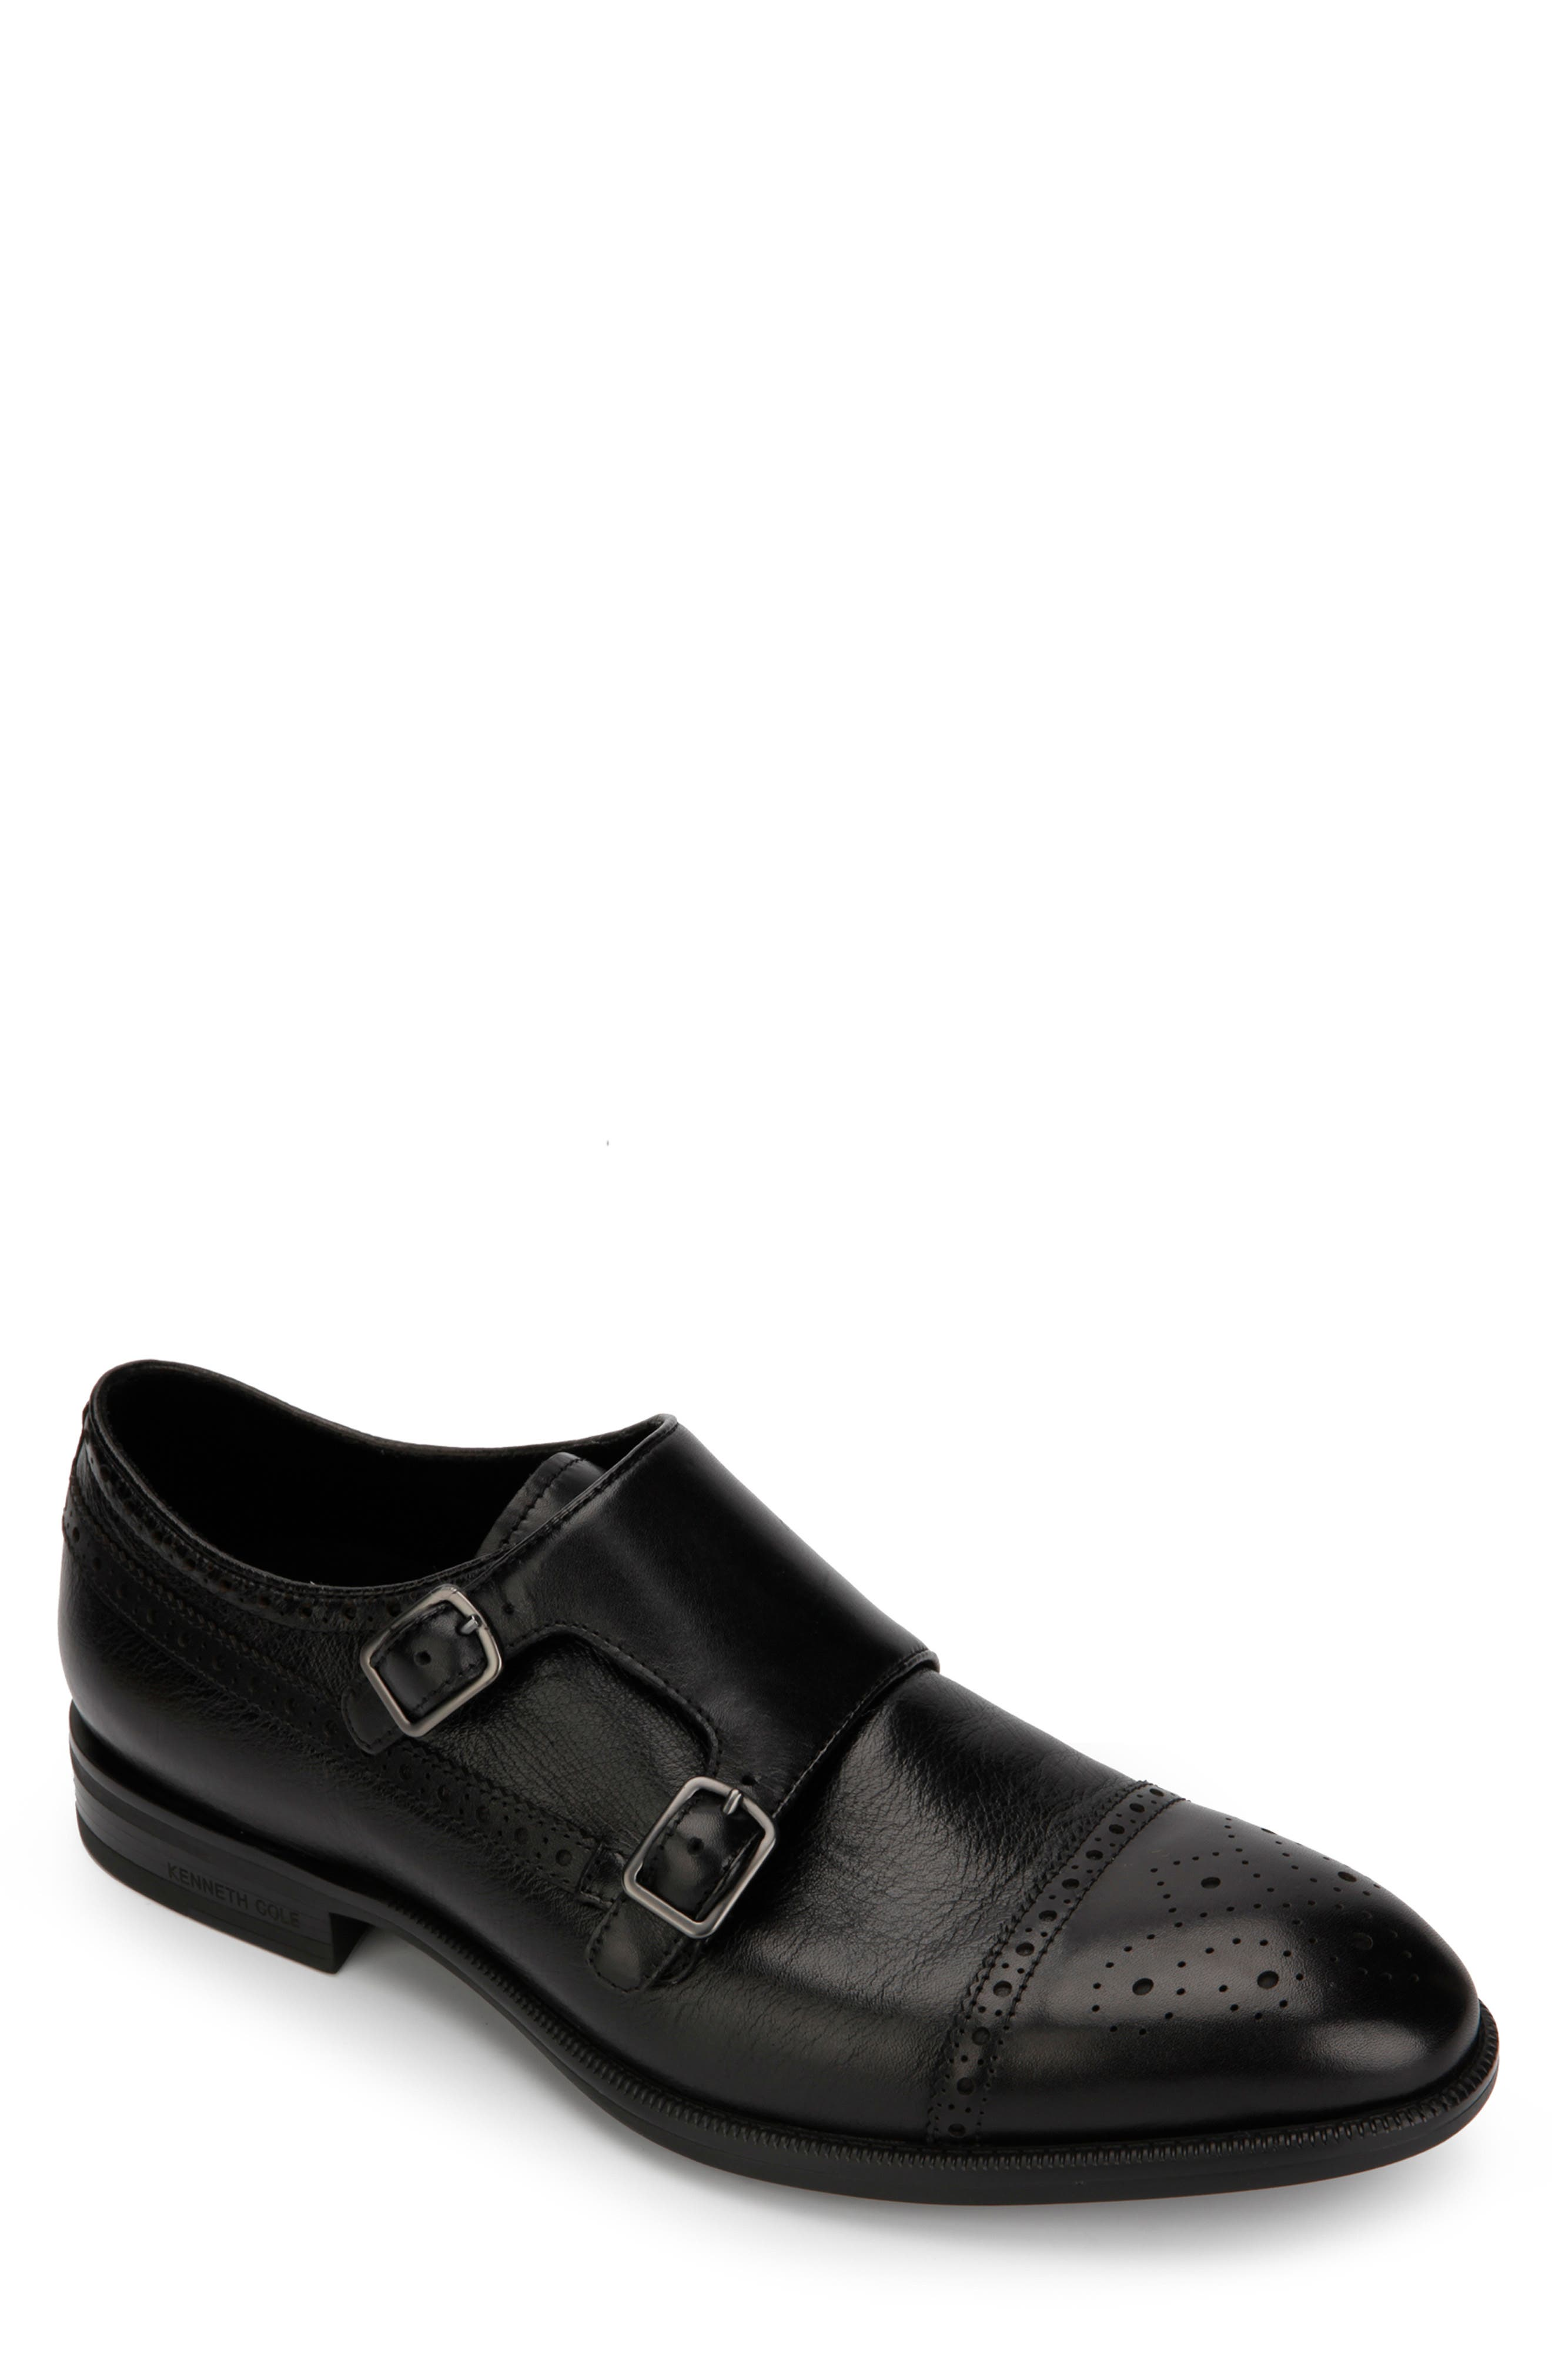 KENNETH COLE NEW YORK, Futurepod Double Monk Strap Shoe, Main thumbnail 1, color, BLACK TUMBLED LEATHER